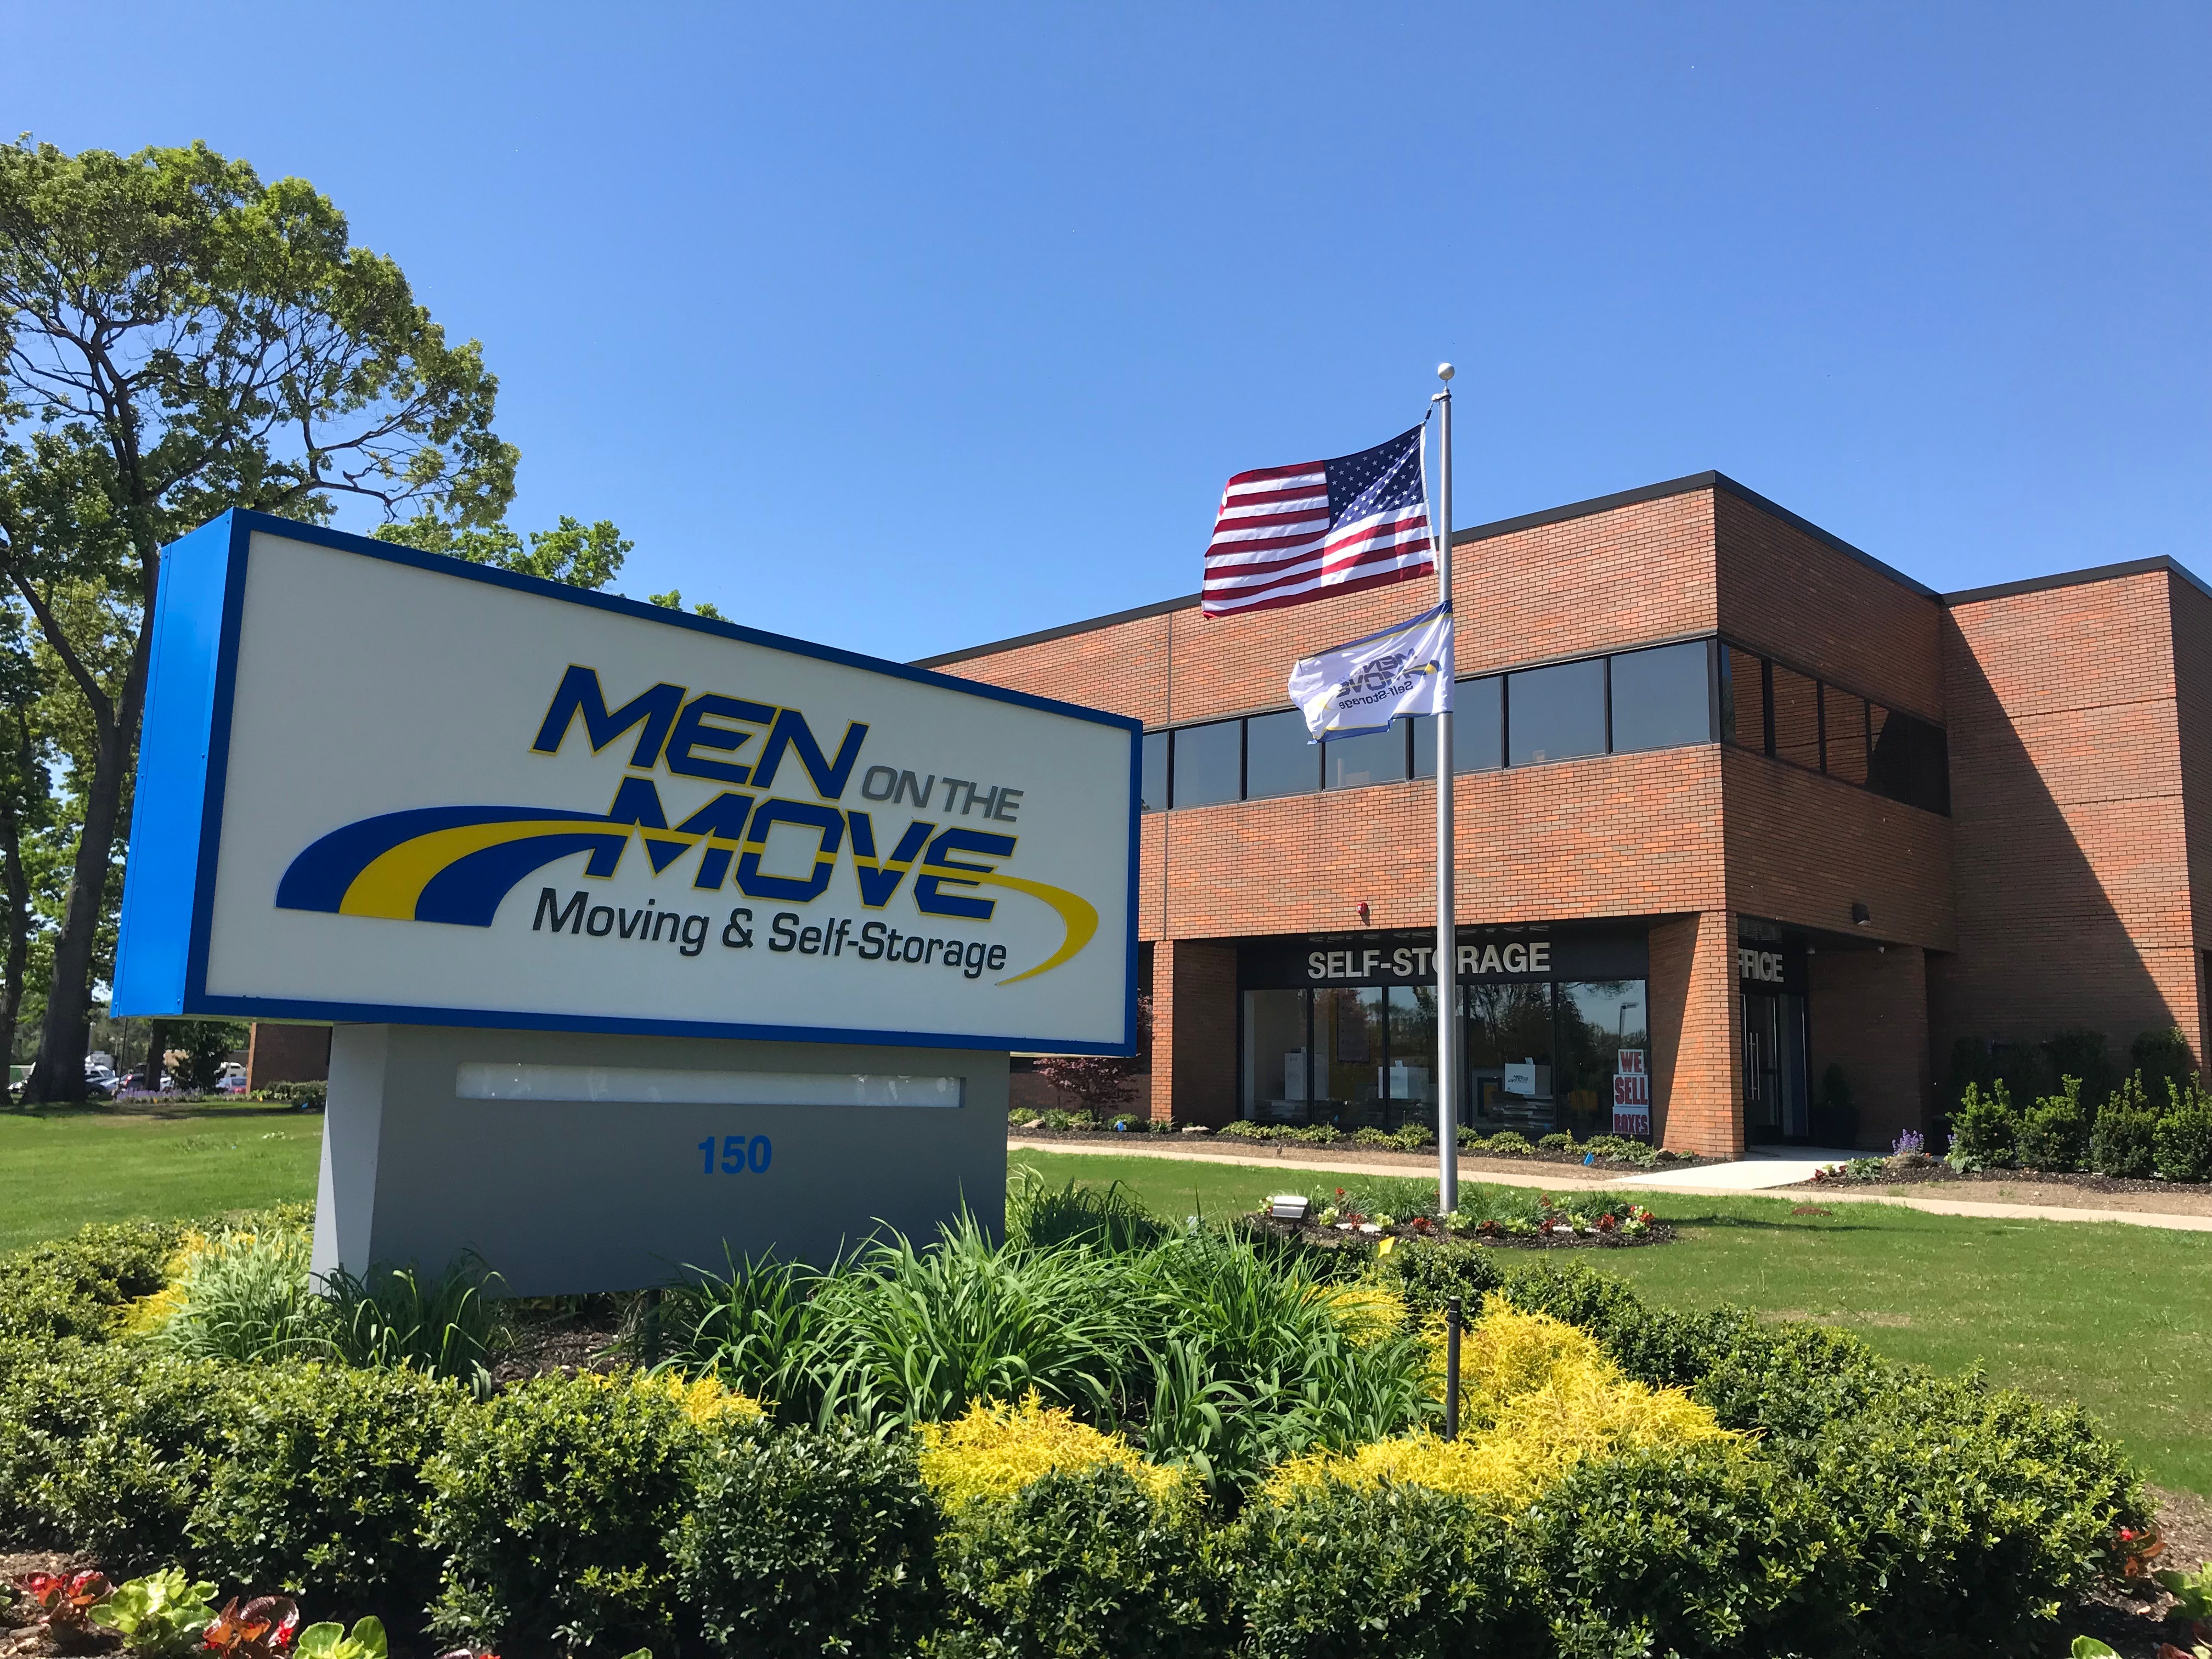 Men On The Move Moving & Self-Storage Headquarters - Long Island, NY